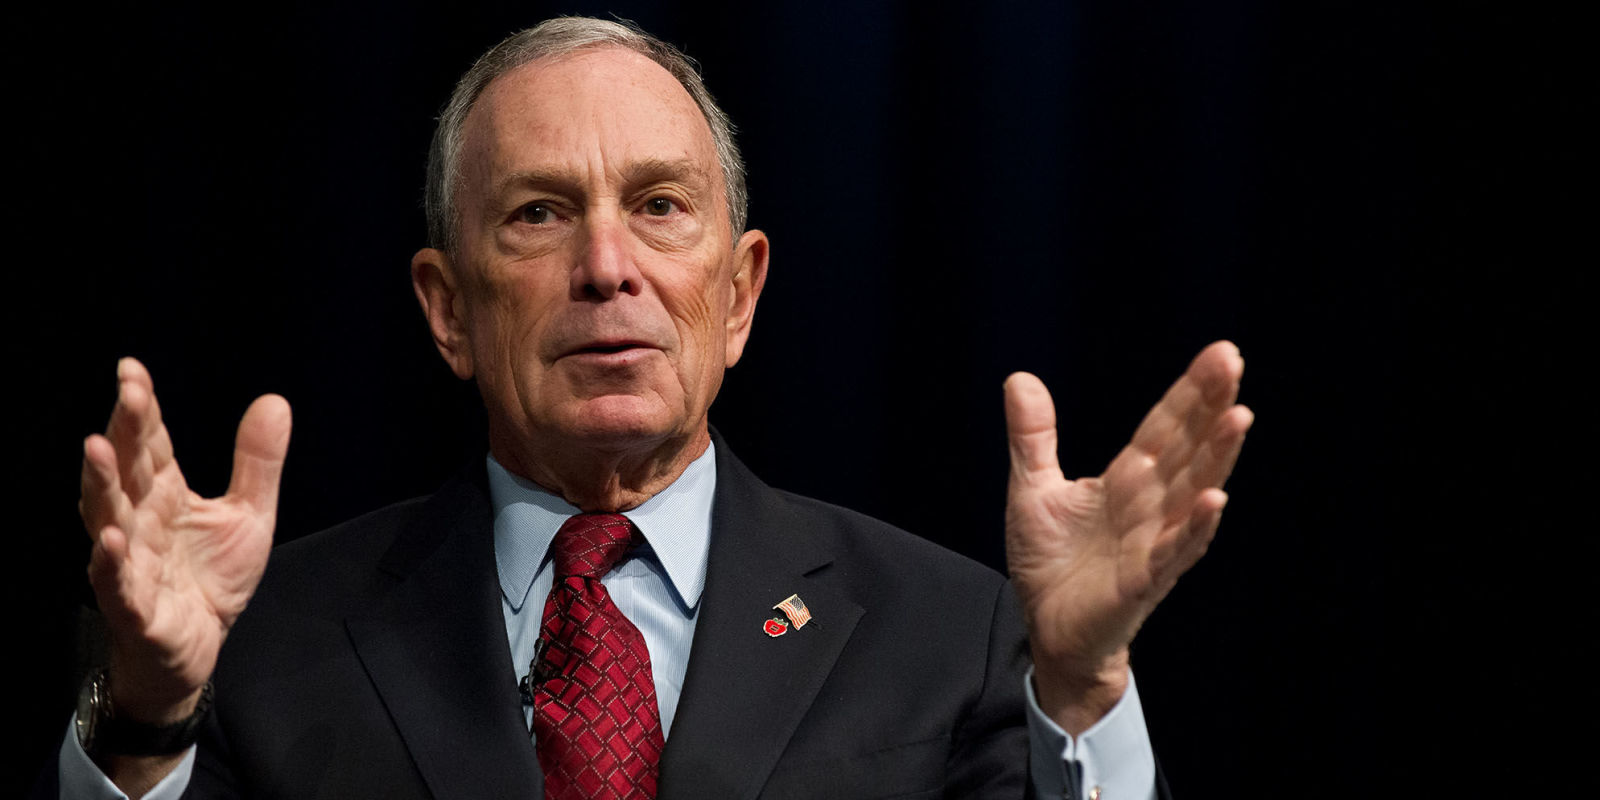 Bloomberg higher taxes poor people